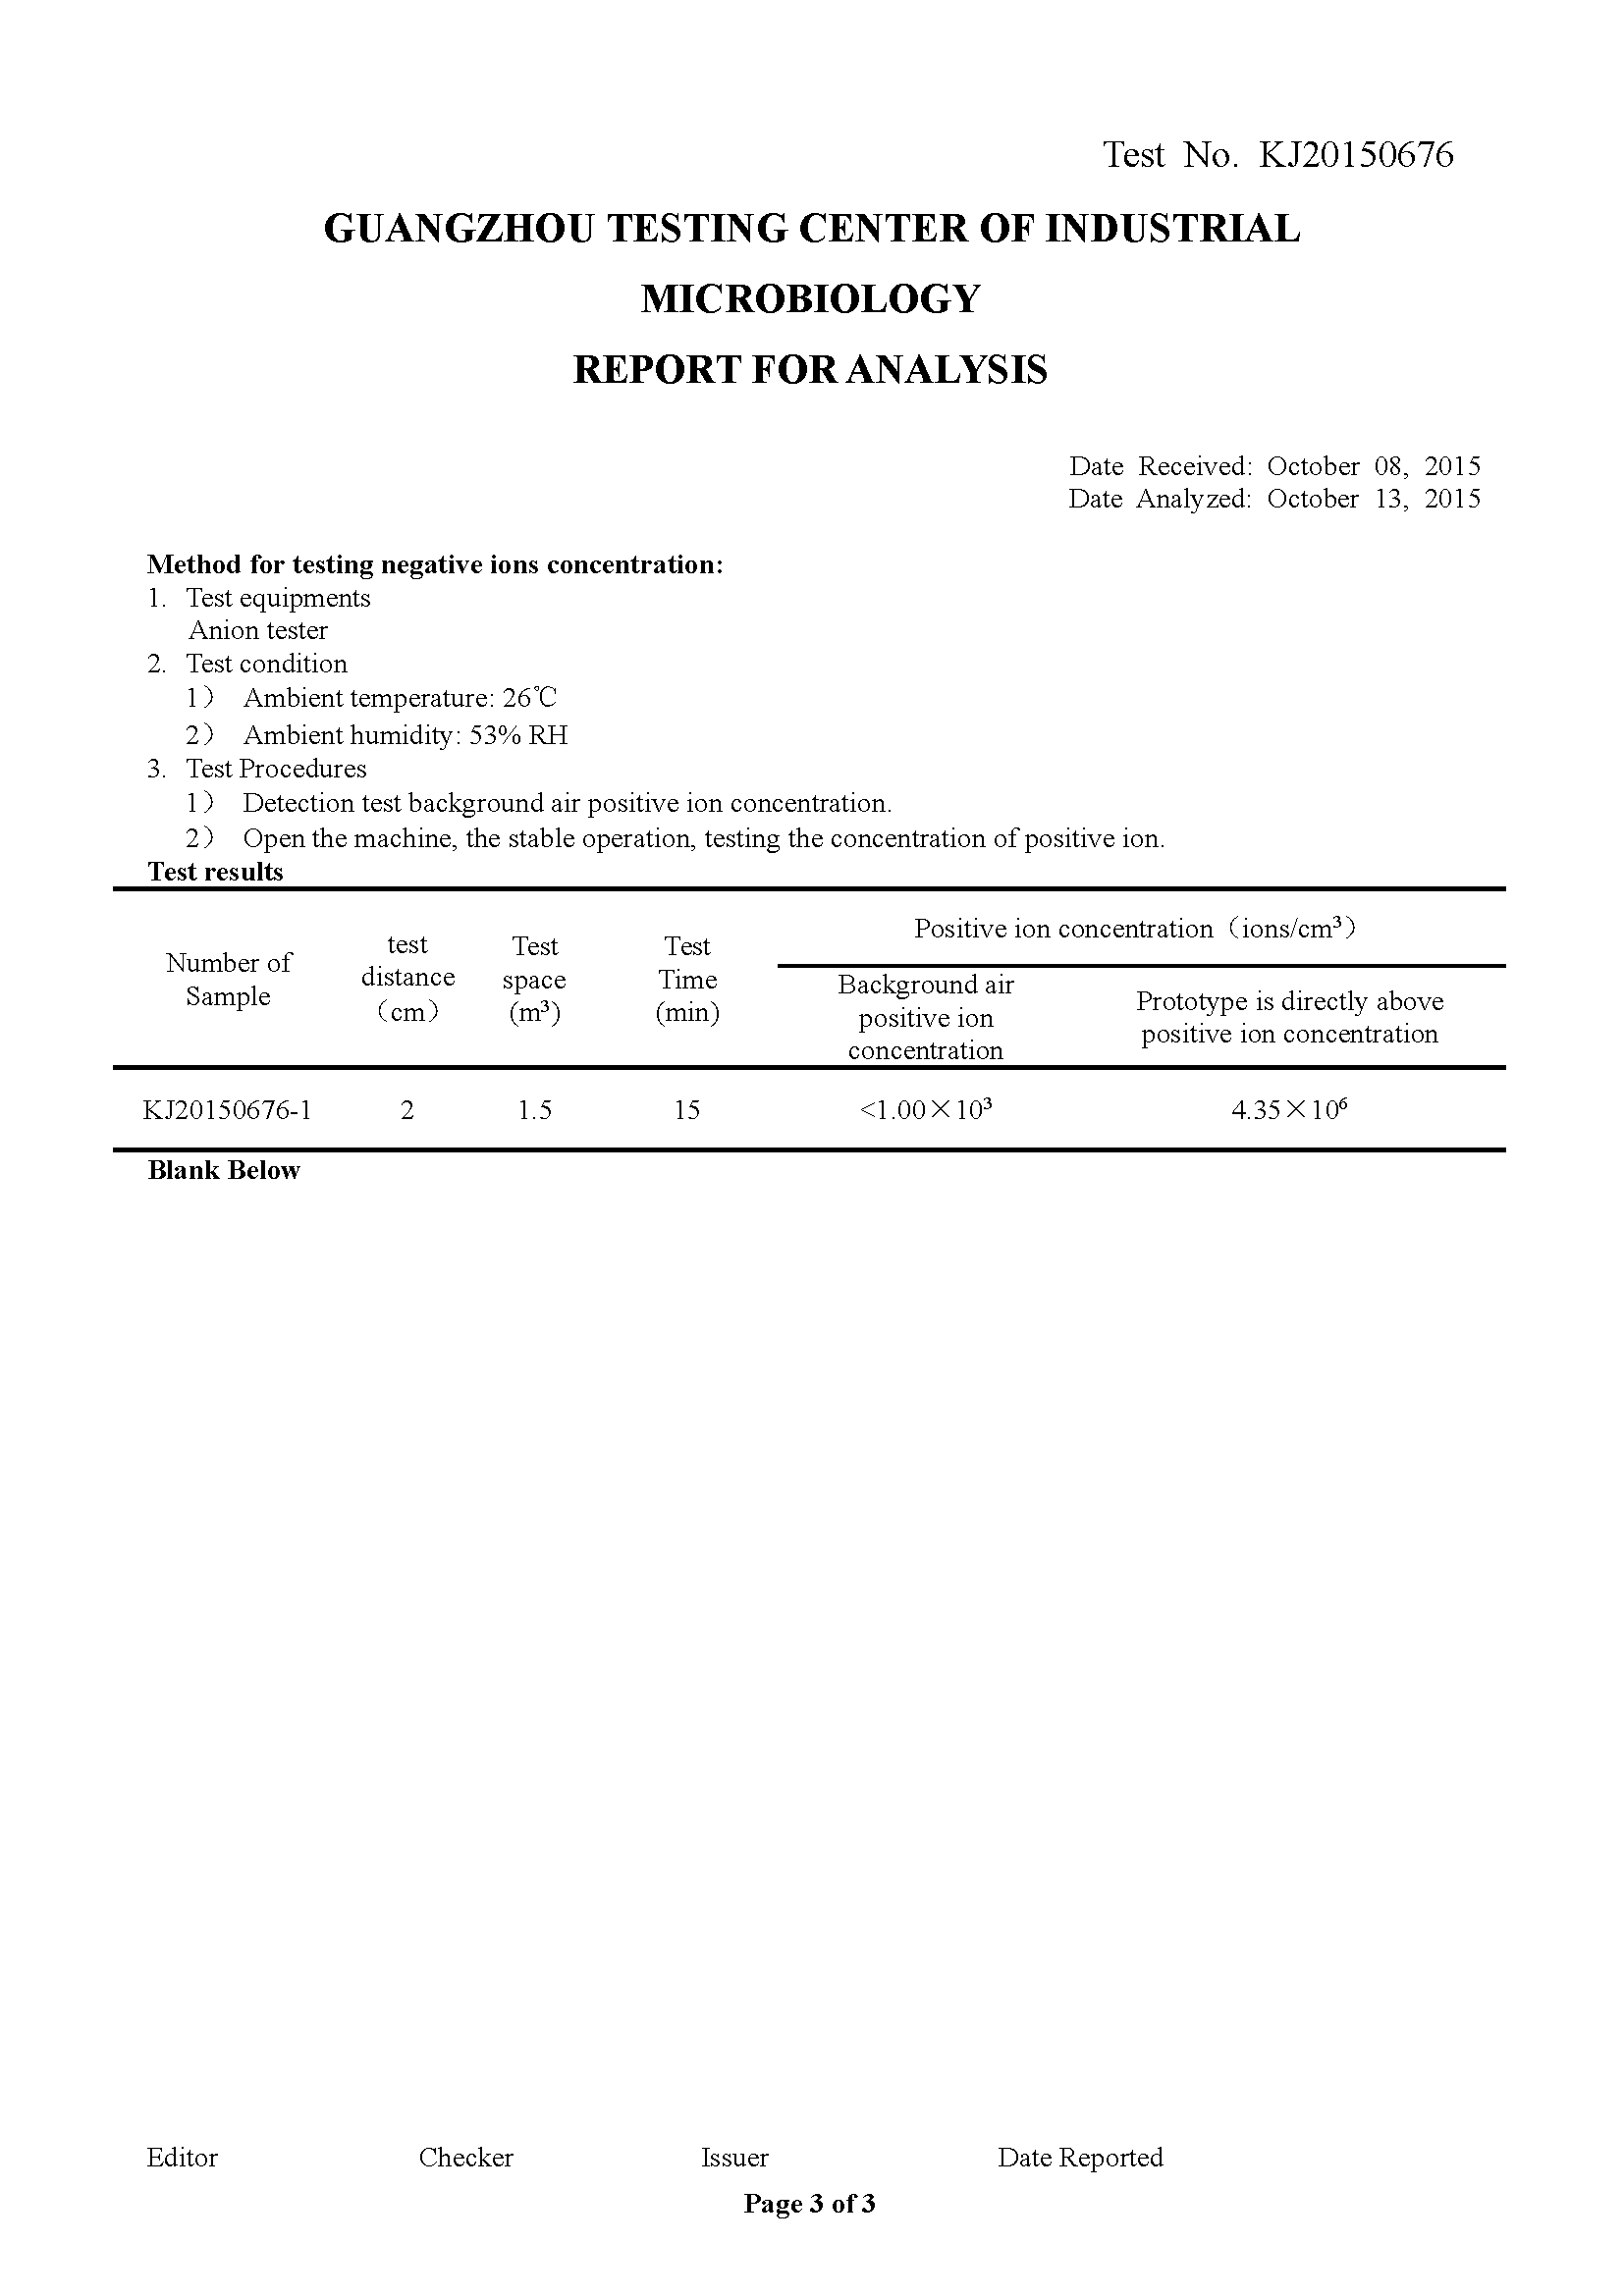 breathe-safe-positive-ions-and-ozone-test-page-3.png